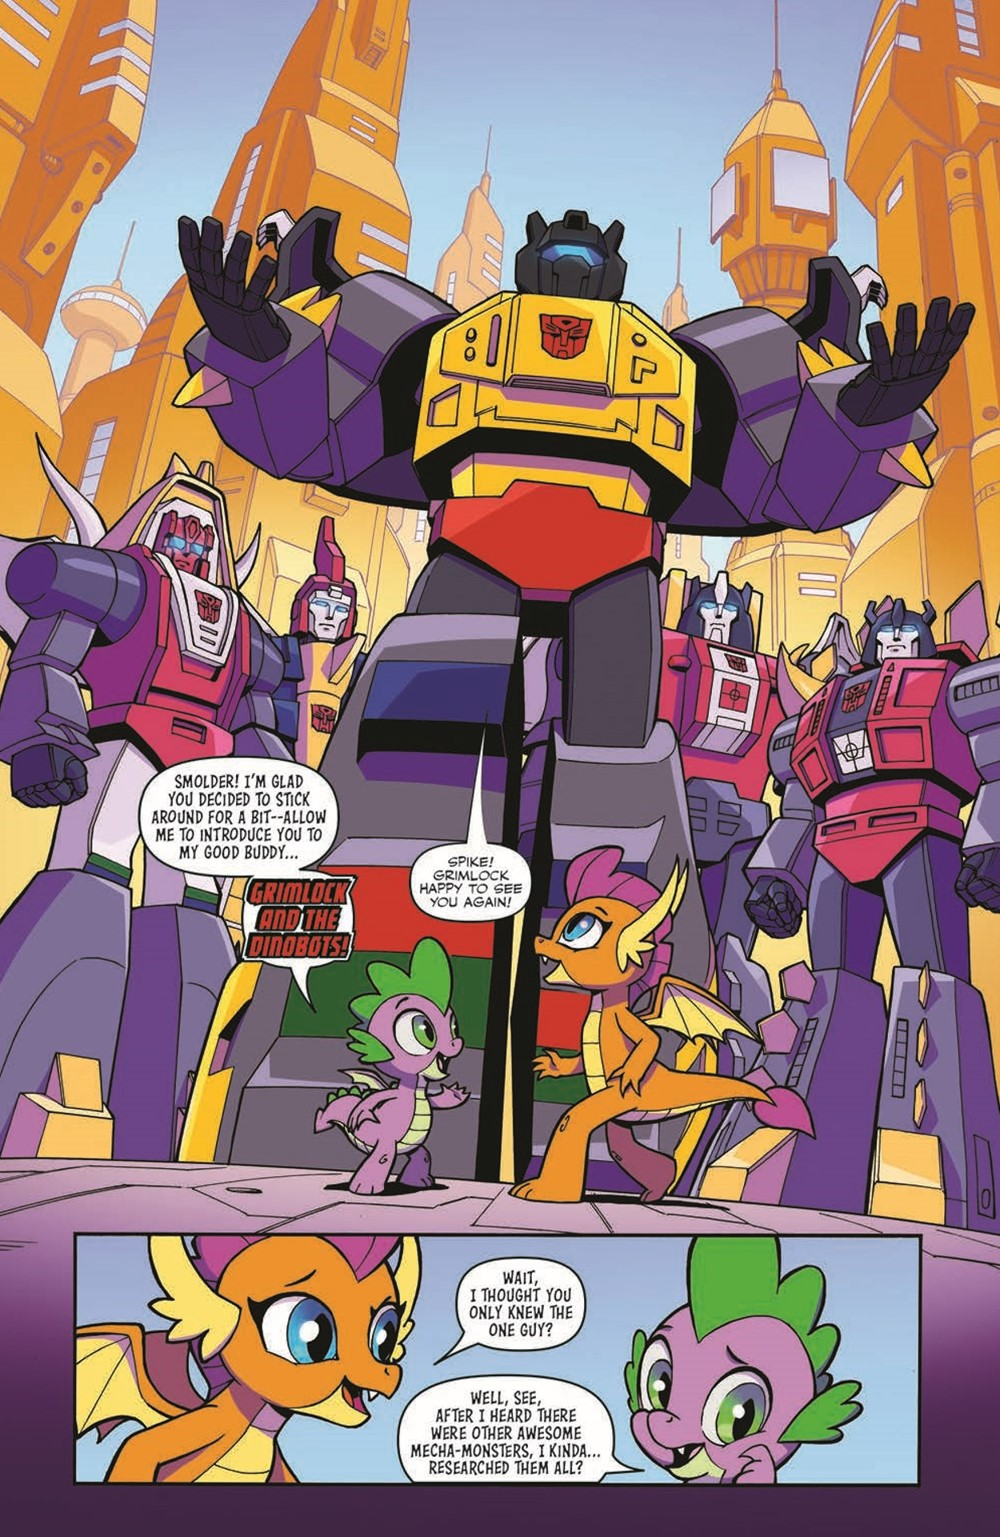 TFMLP2-04-pr-3 ComicList Previews: MY LITTLE PONY TRANSFORMERS II #4 (OF 4)